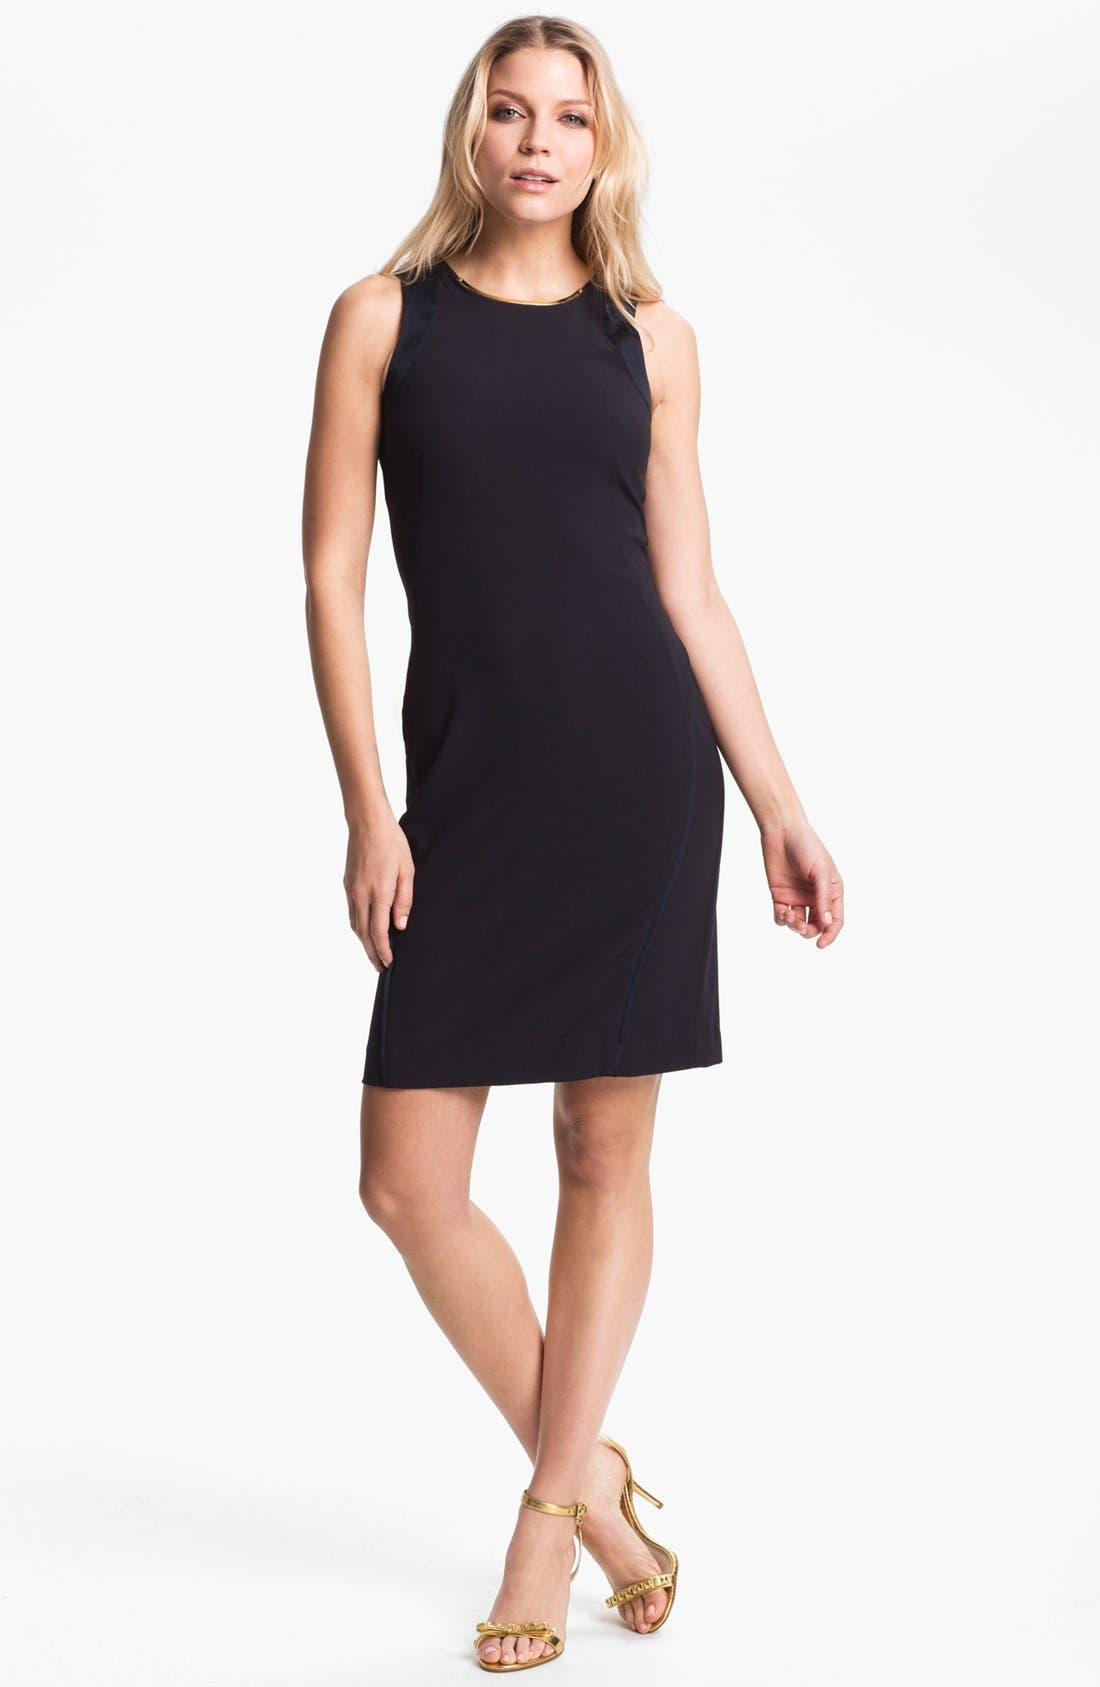 Alternate Image 1 Selected - MICHAEL Michael Kors Embellished Neck Sleeveless Dress (Petite)